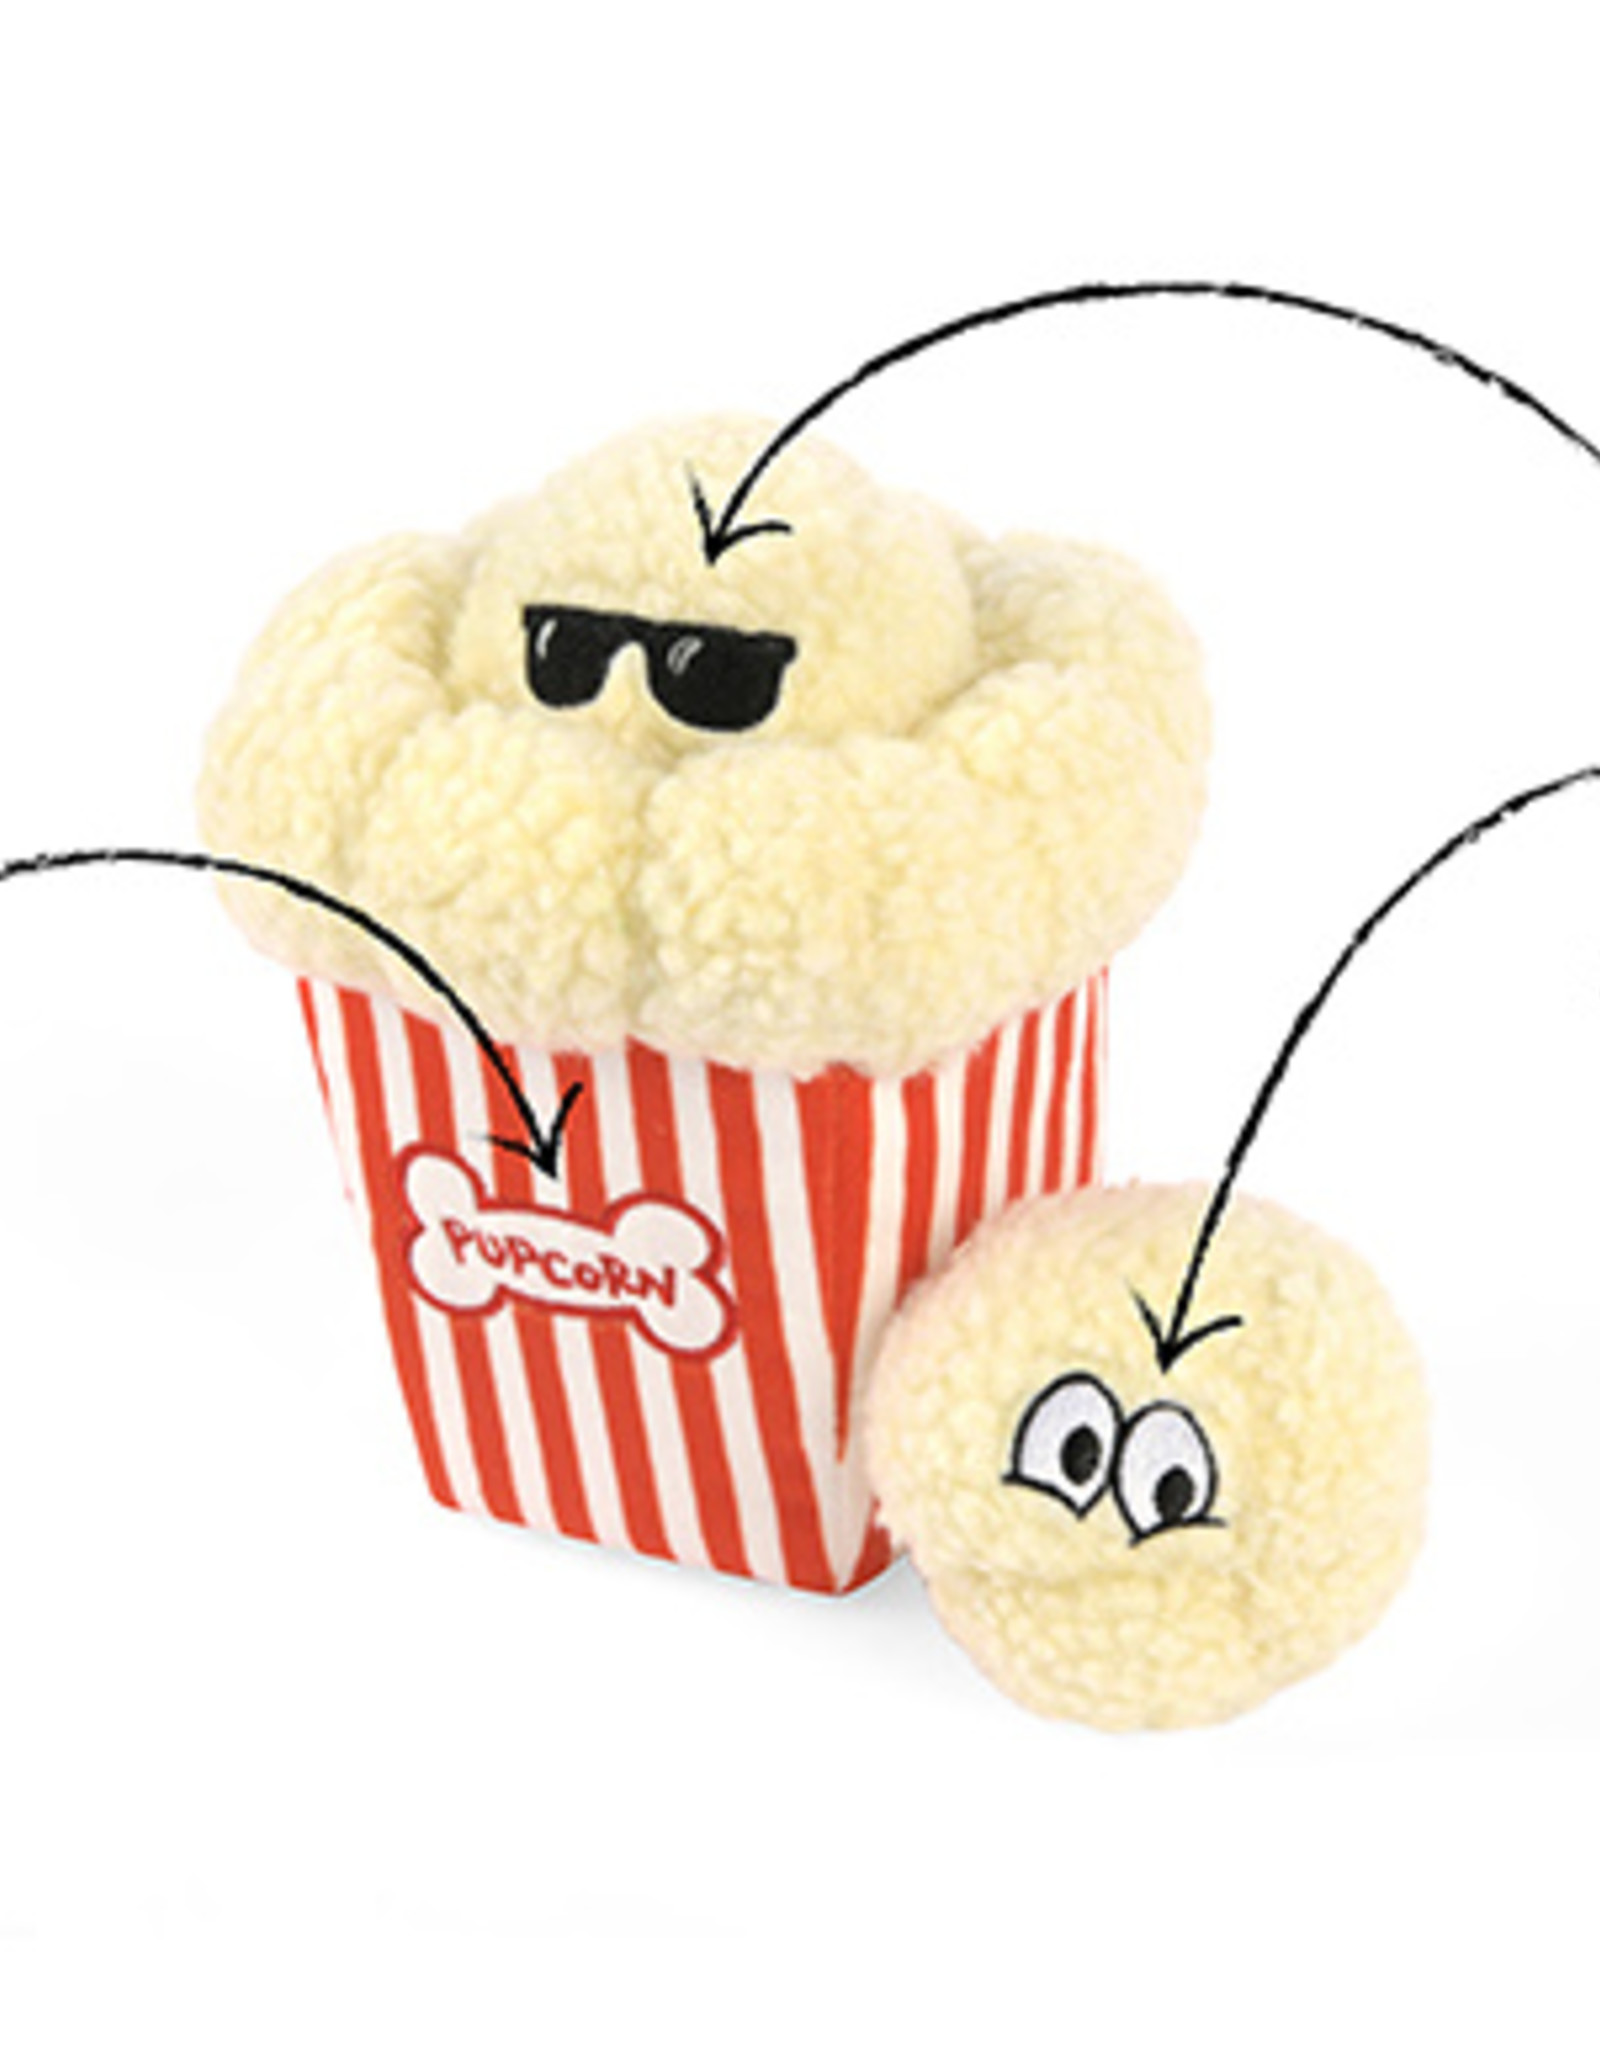 P.L.A.Y. Poppin' Pupcorn